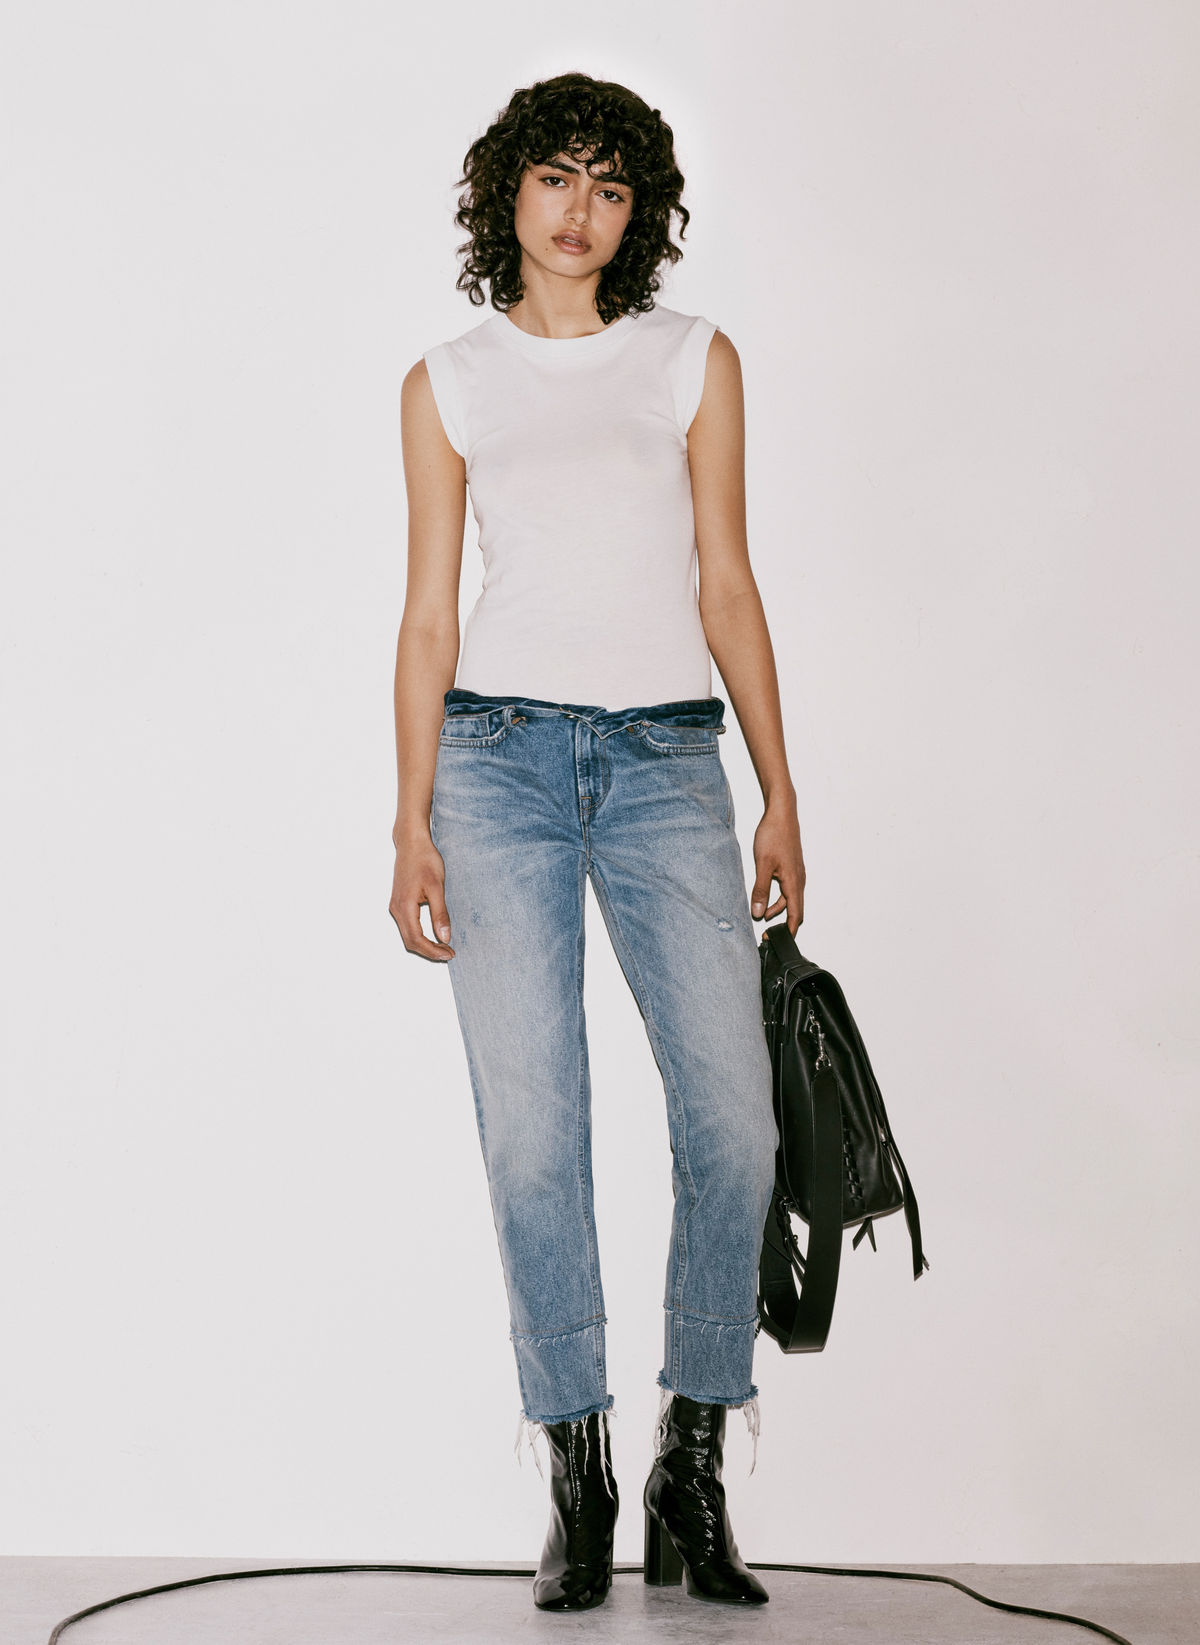 Lookbook image of a woman standing in front of a plain white background and wearing an outfit option from our August new arrivals.